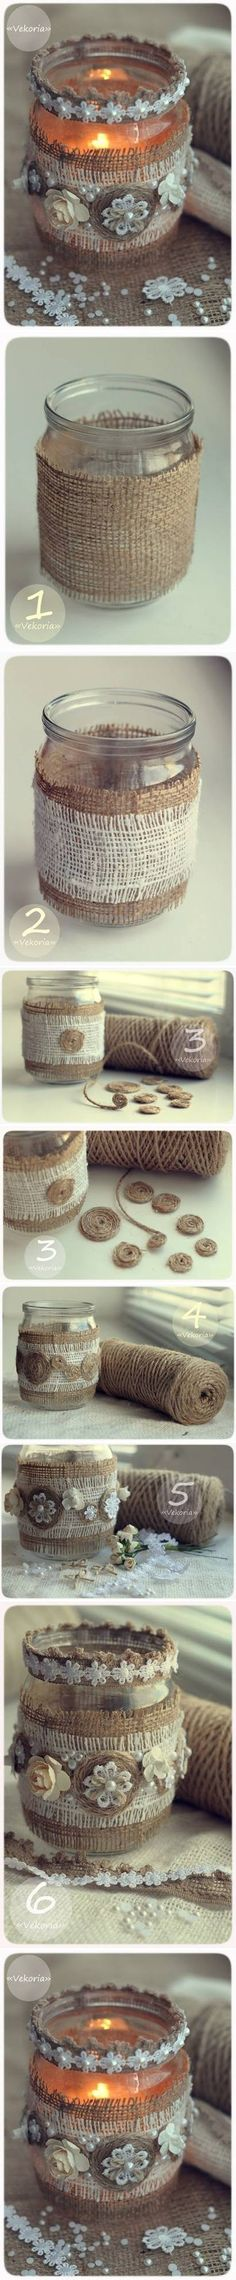 DIY Vintage Burlap Candle Holder